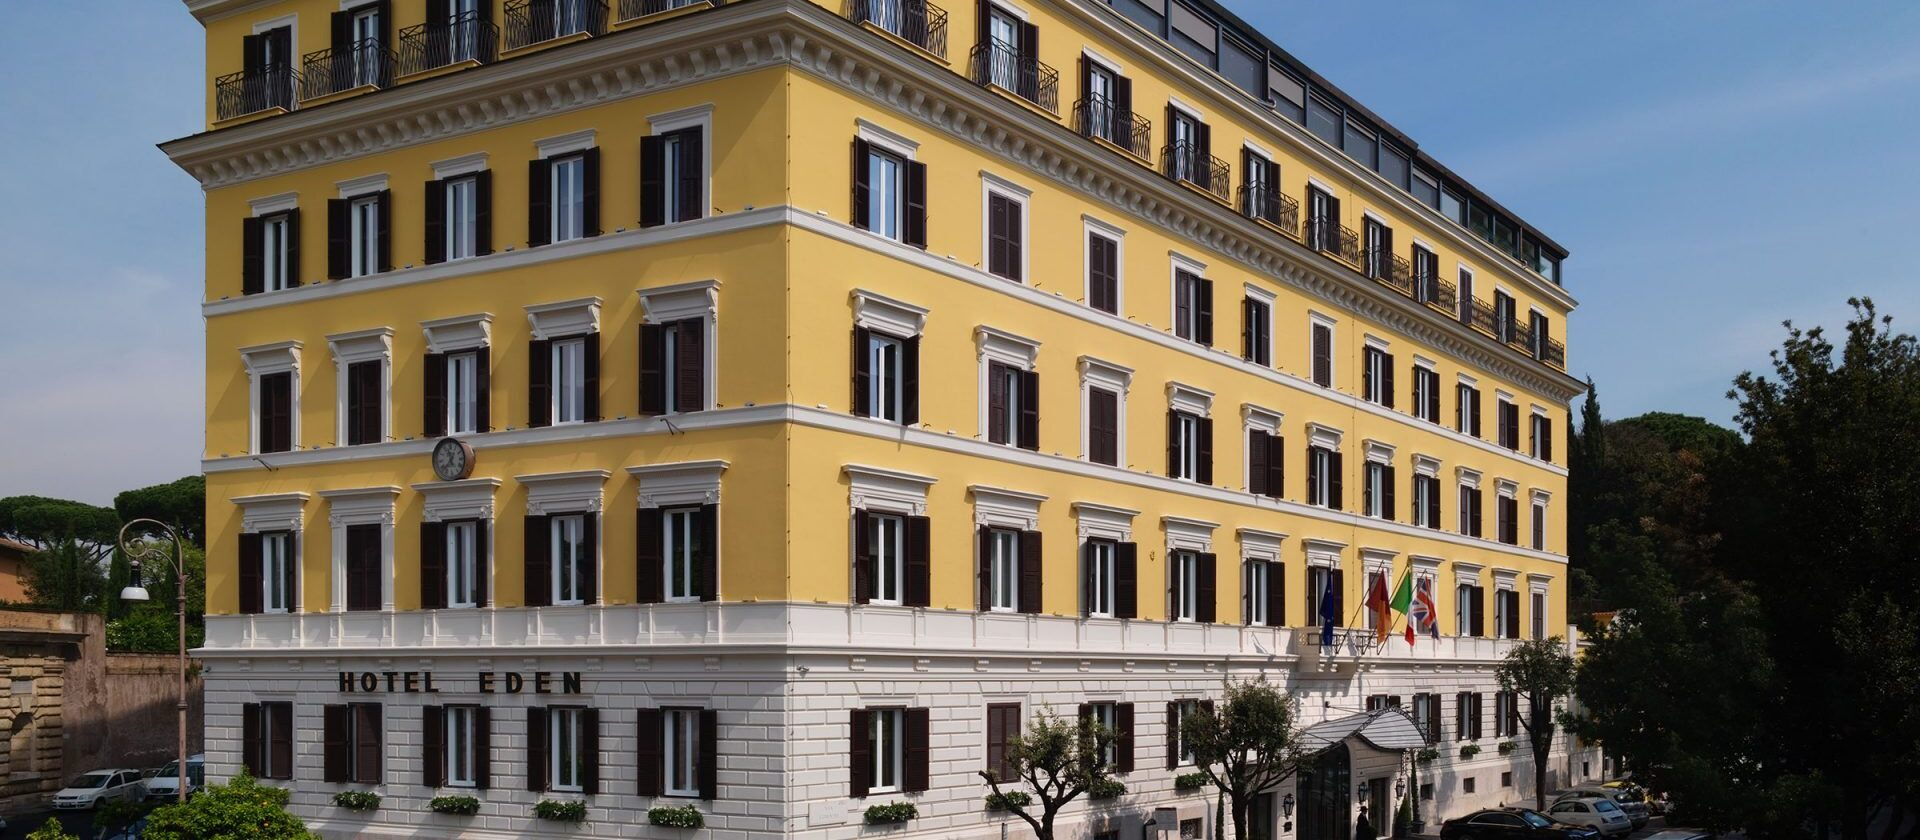 Hotel Guide For Hotel Eden Dorchester Collection